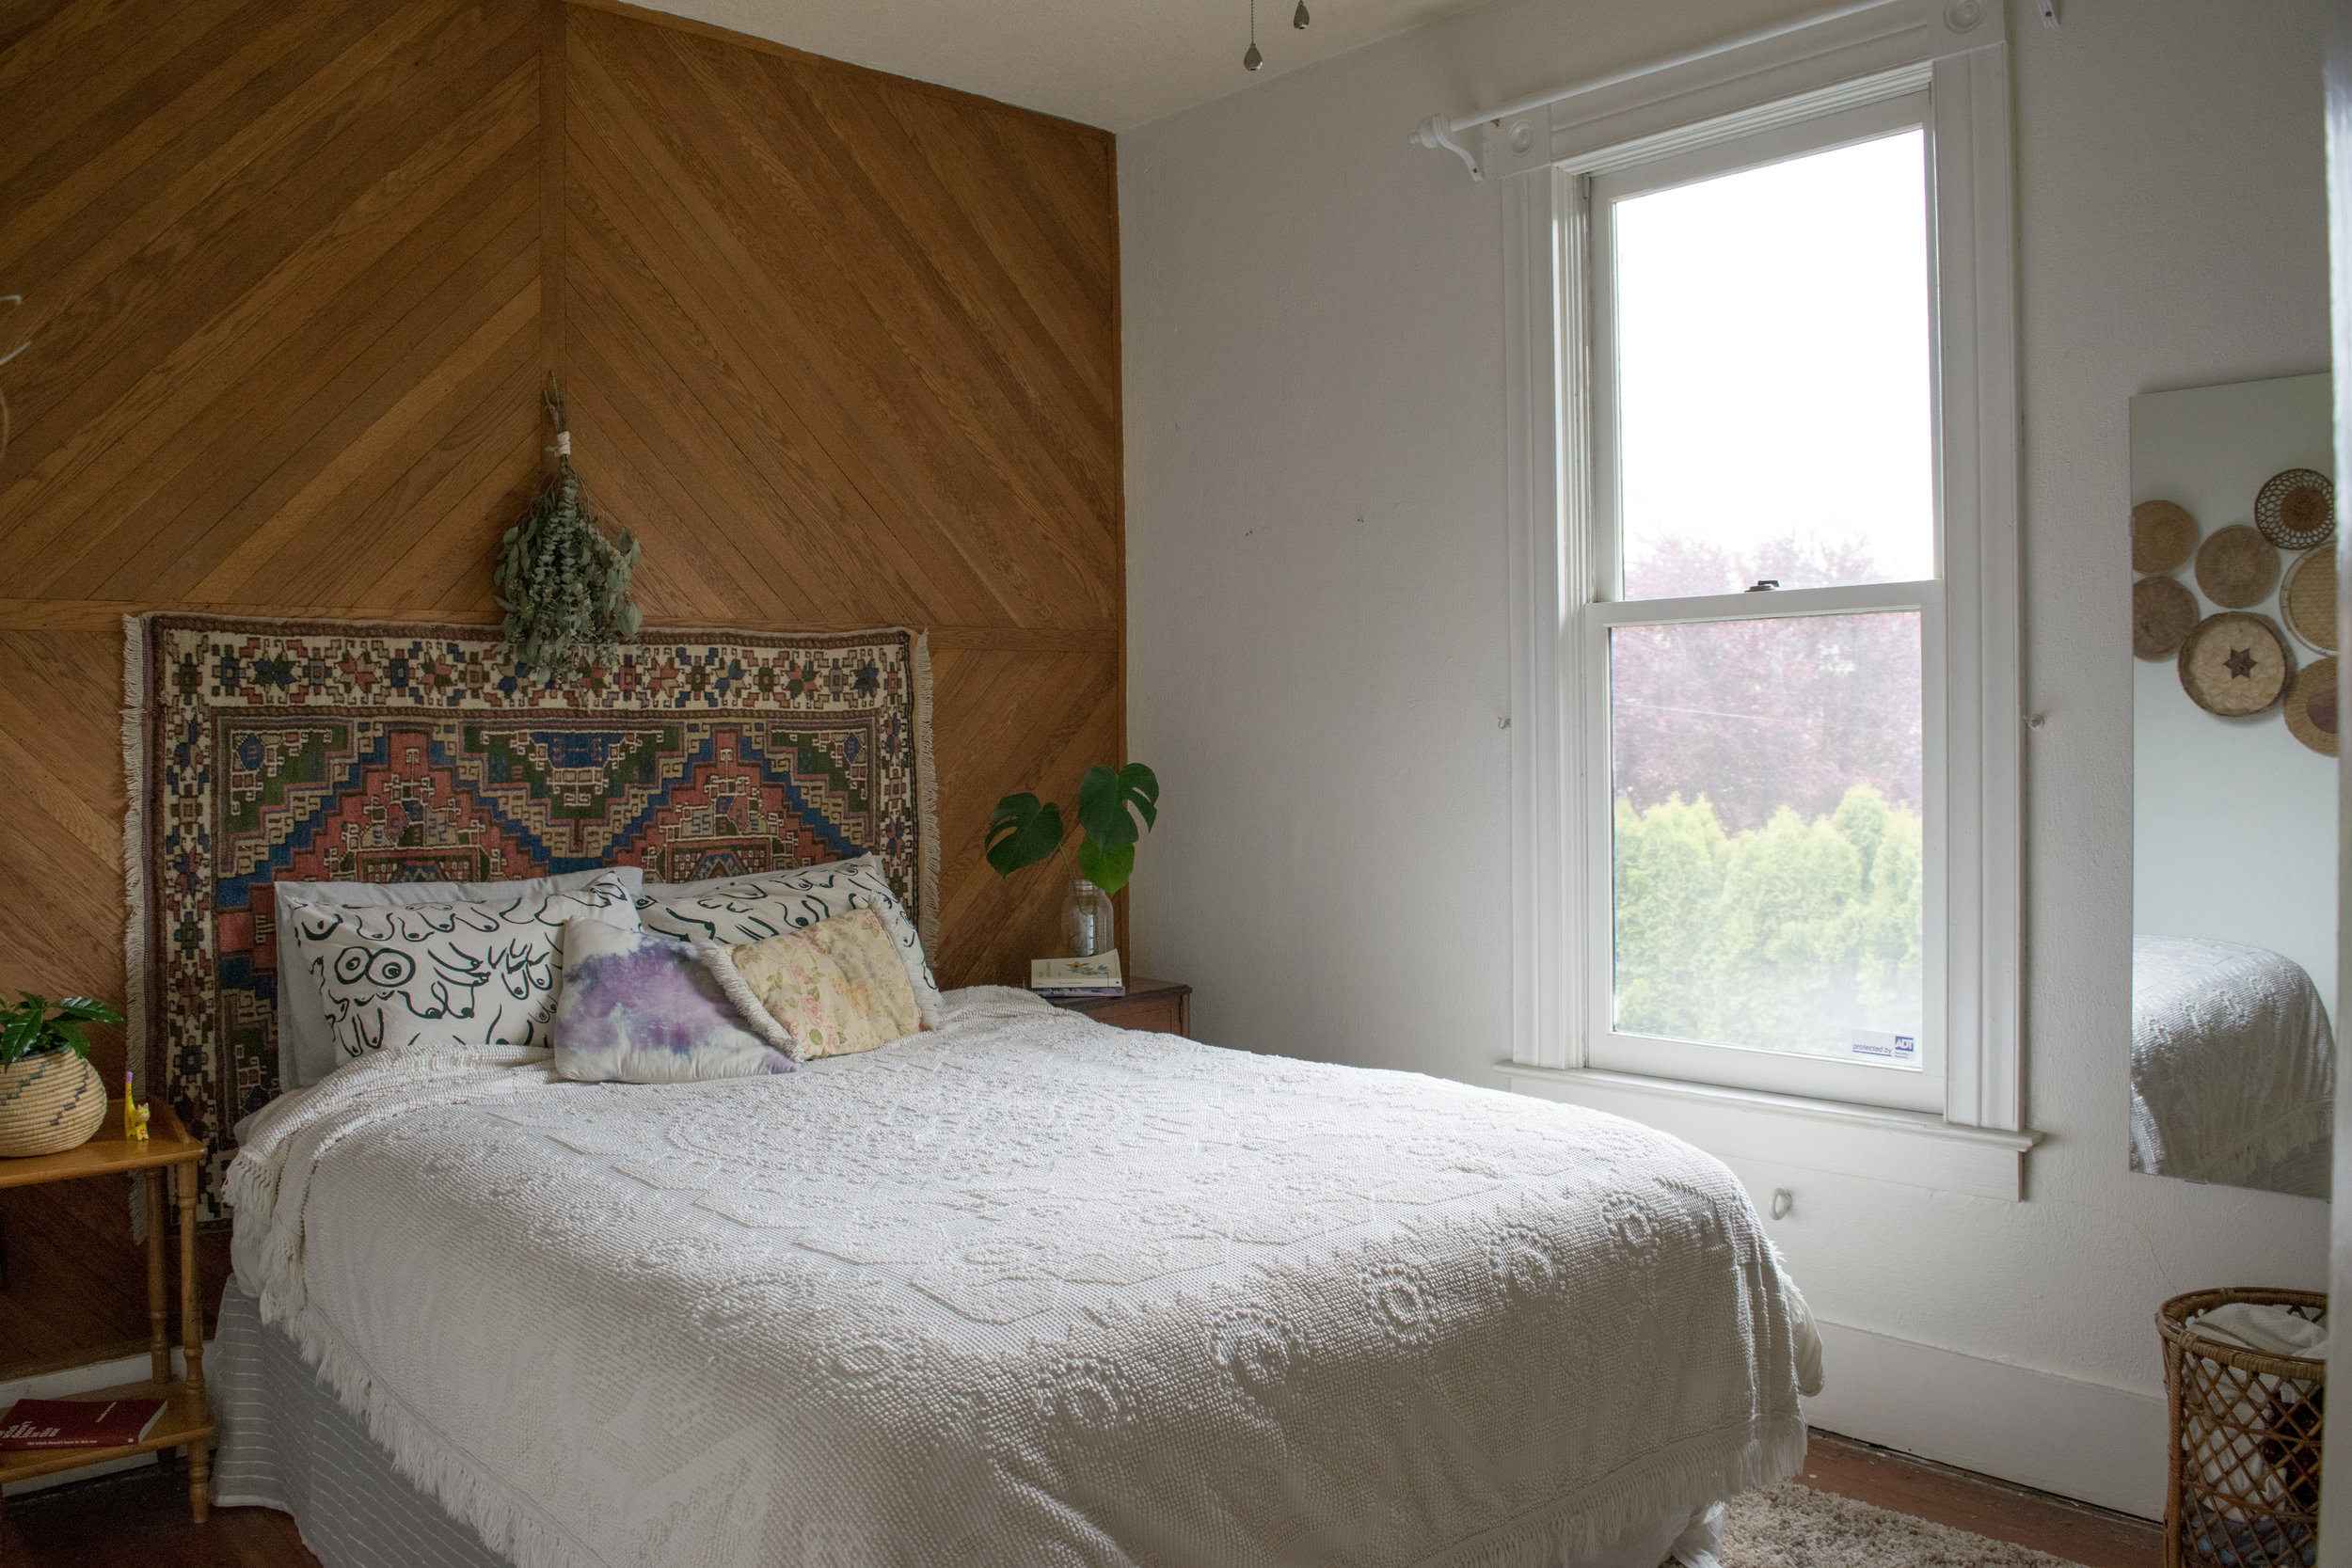 bedroom_paneling (1 of 1).jpg